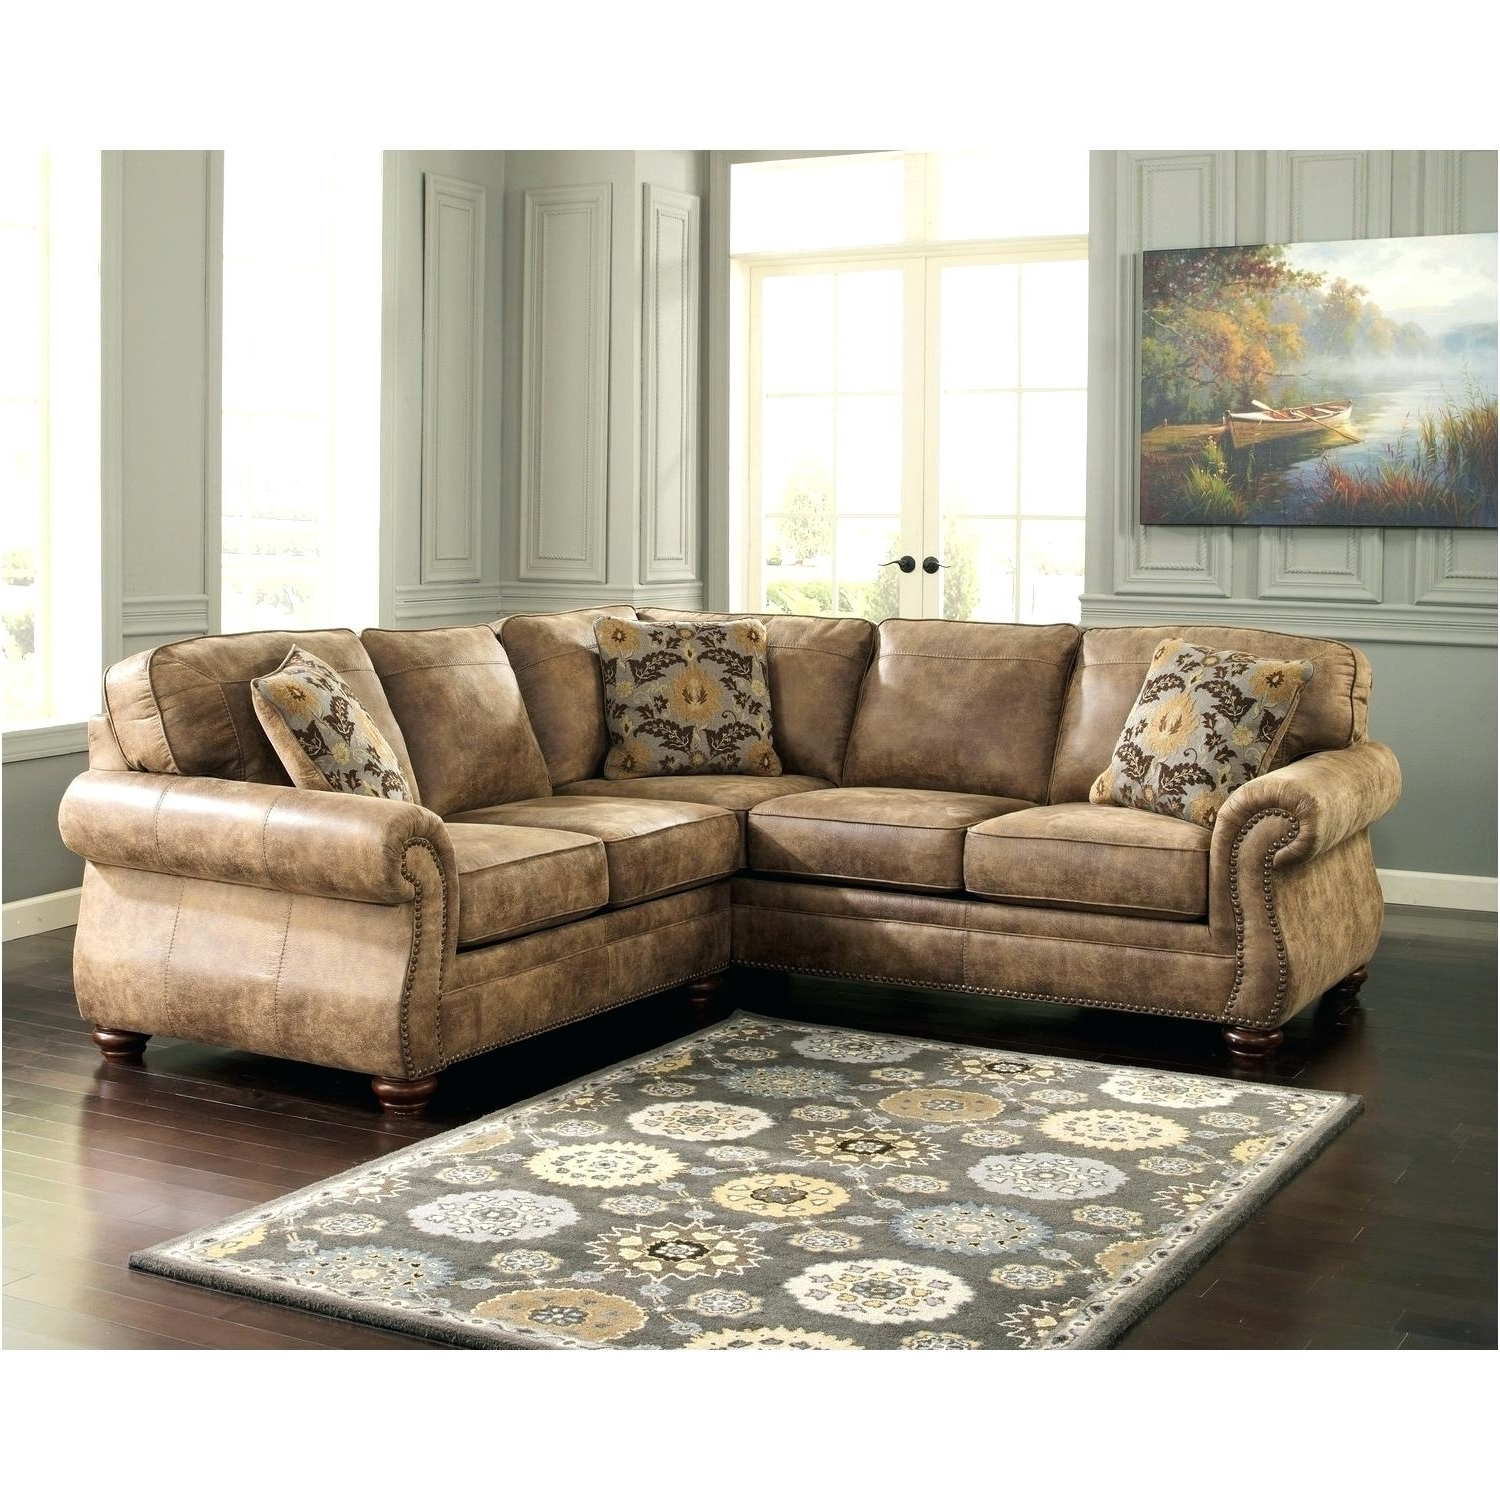 Joplin Mo Sectional Sofas In Most Recent Sectionals Sofa S Sofas Ikea For Sale Sectional Small Spaces (View 9 of 20)